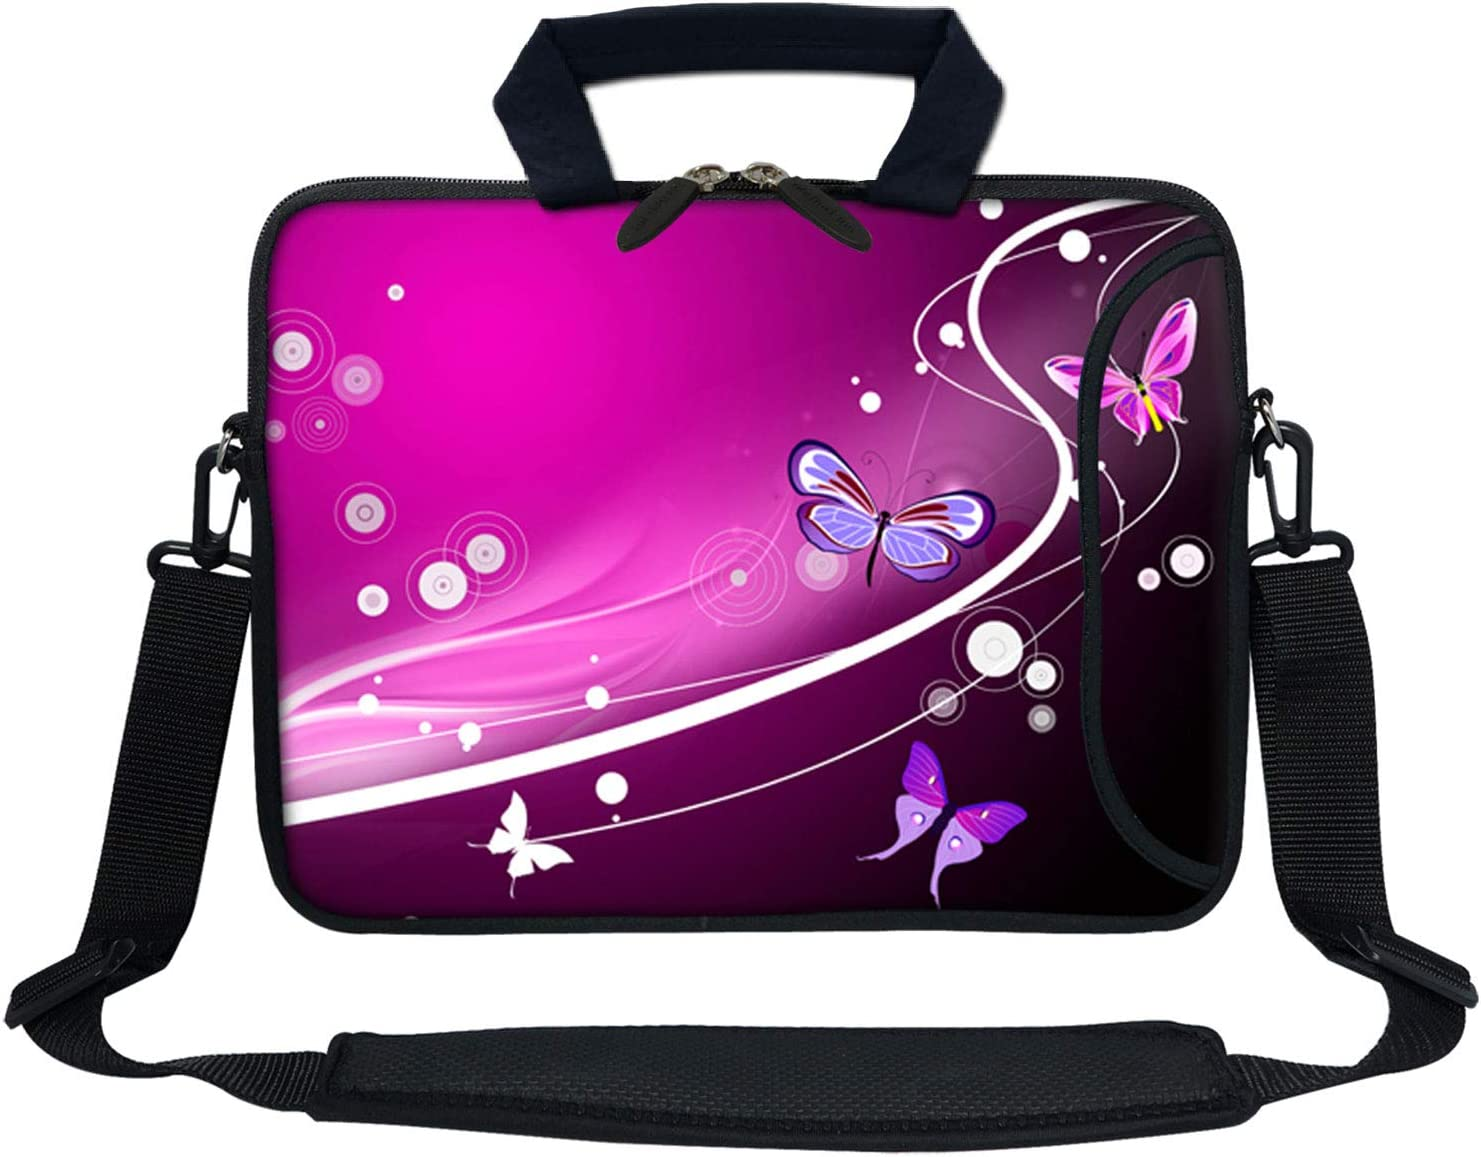 Meffort Inc 13 Inch Neoprene Laptop Bag with Extra Side Pocket Fits for 12.5 to 13.3 Inch Size Computer - Pink Purple Butterfly